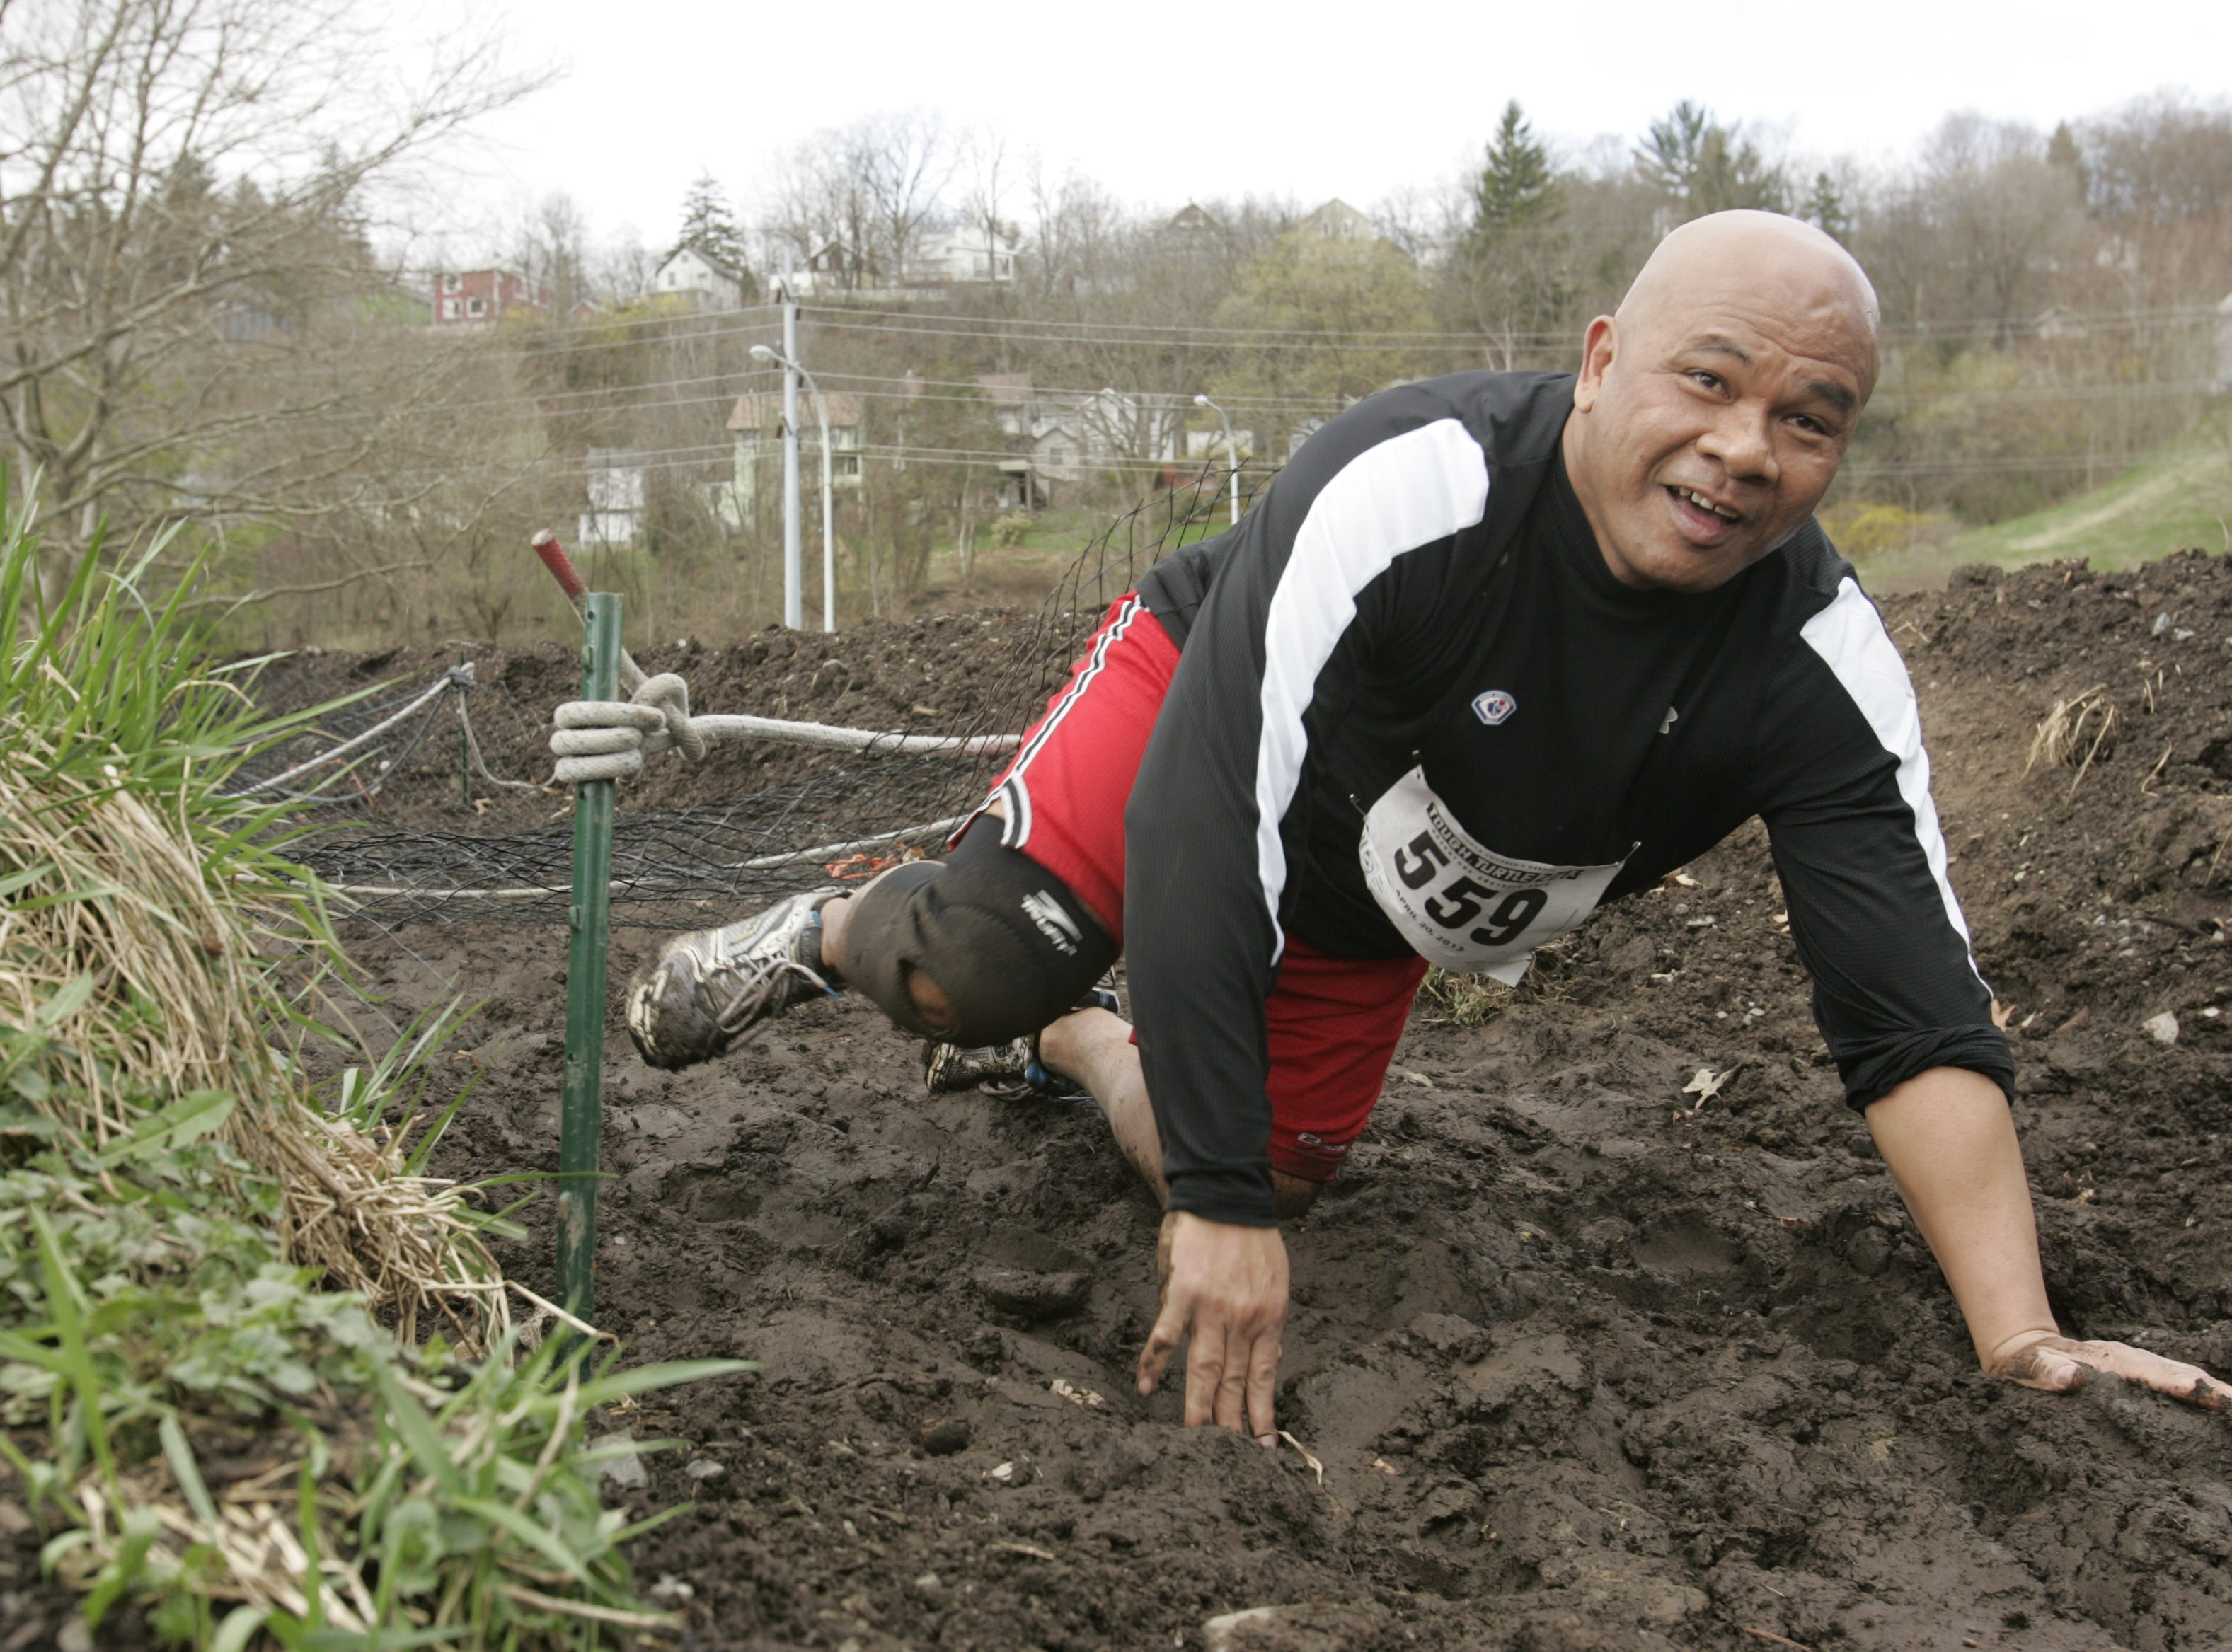 2013: A racer scrambles through the mud near the finish line at the Tough Turtle race held Saturday in Ithaca. The race benefits the Ithaca Children's Garden.